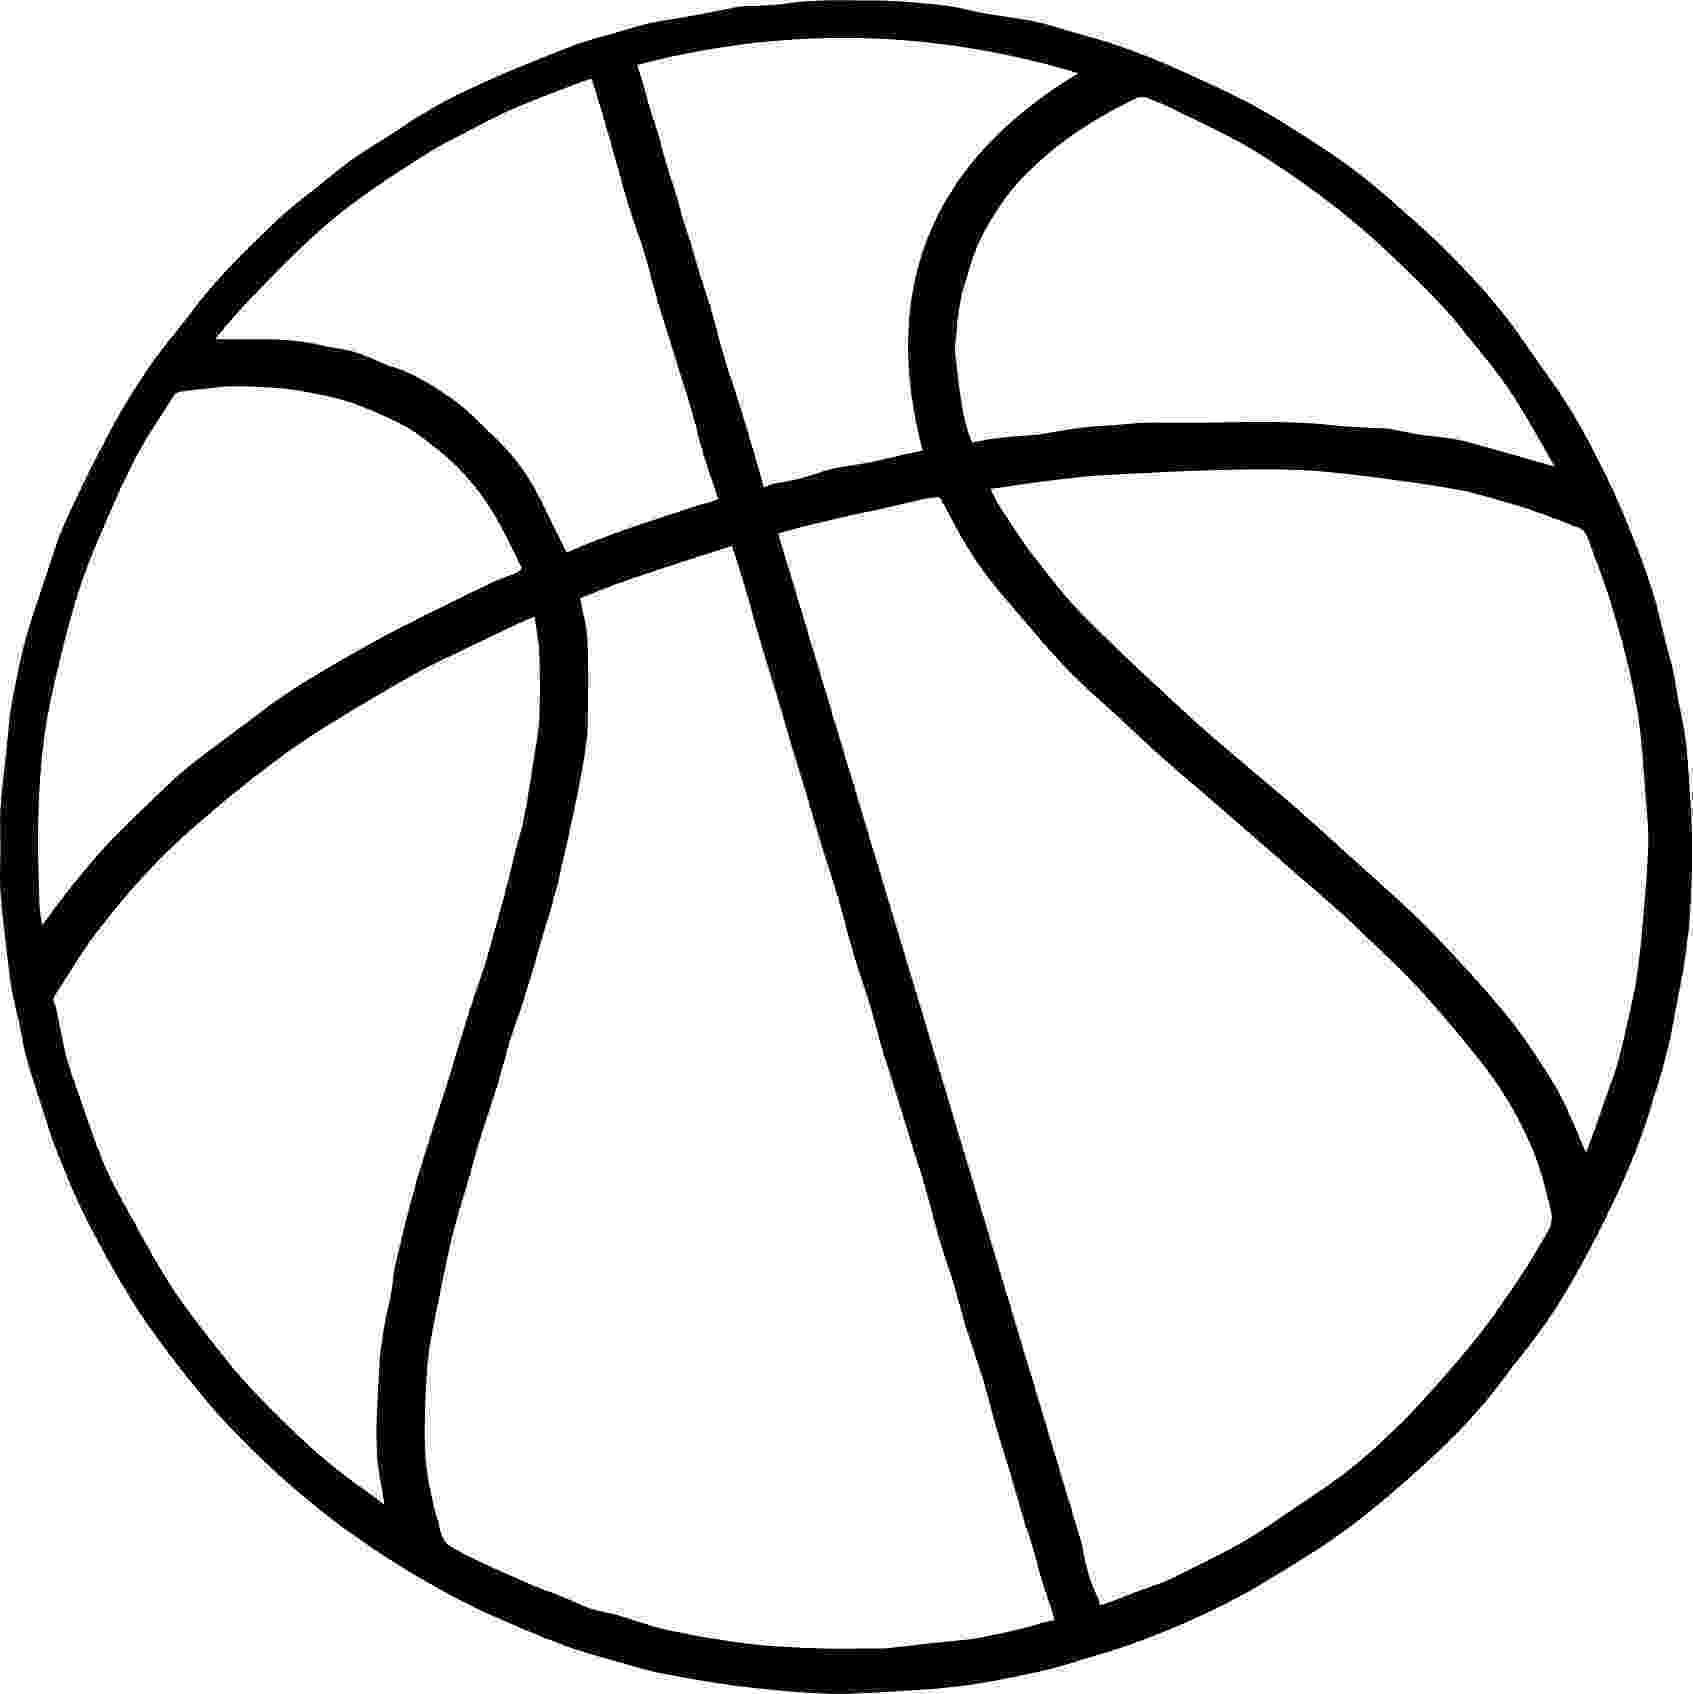 colouring sheet of ball just basketball ball coloring page wecoloringpagecom ball colouring of sheet